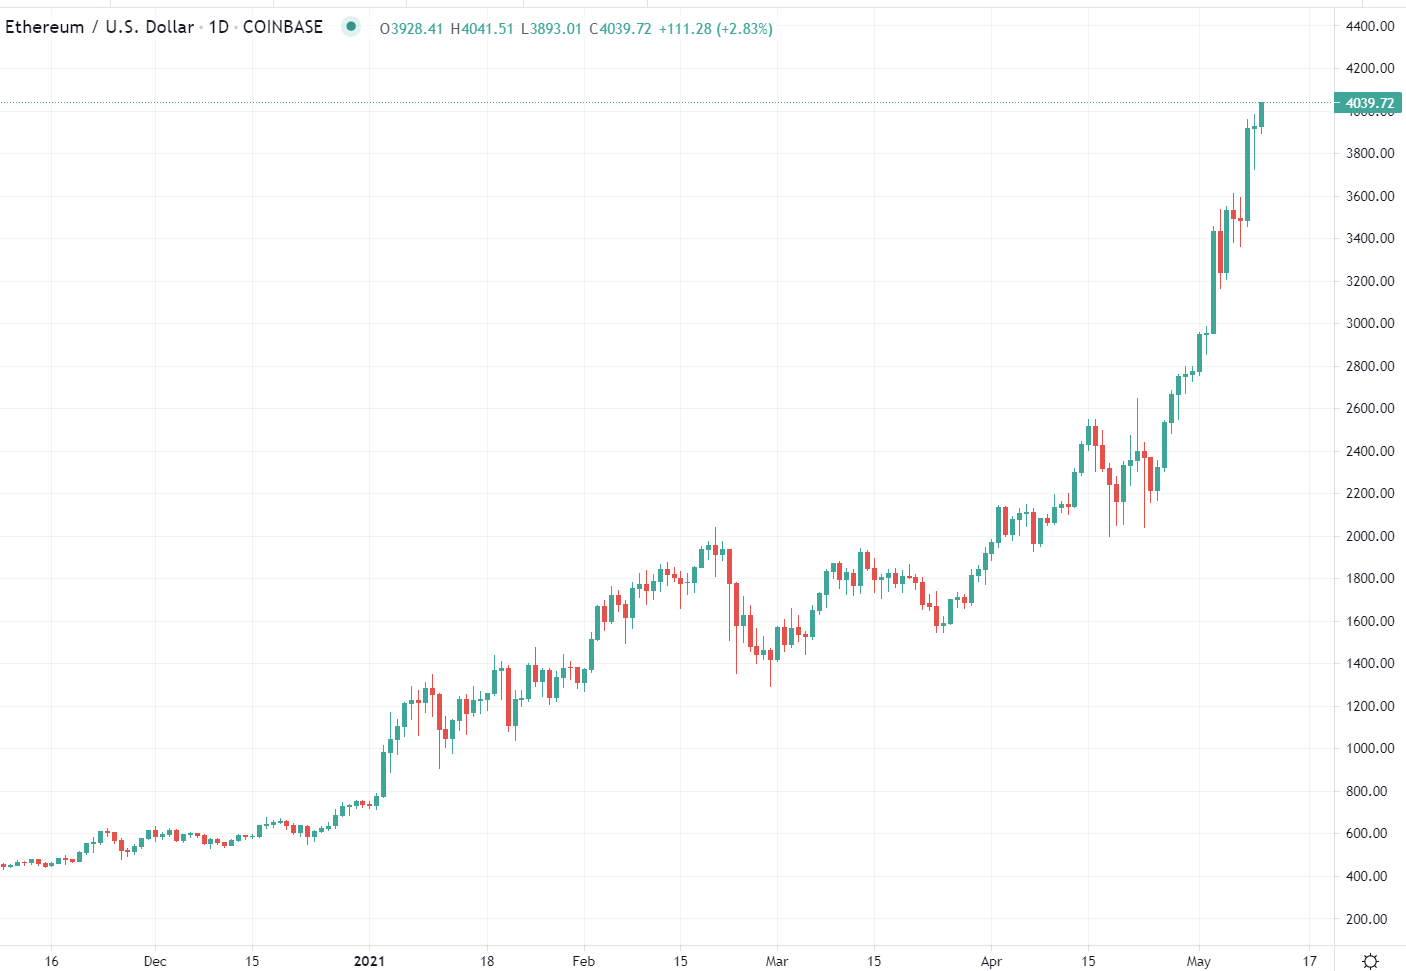 Ethereum (ETH) is having a good session ... above USD$4K now